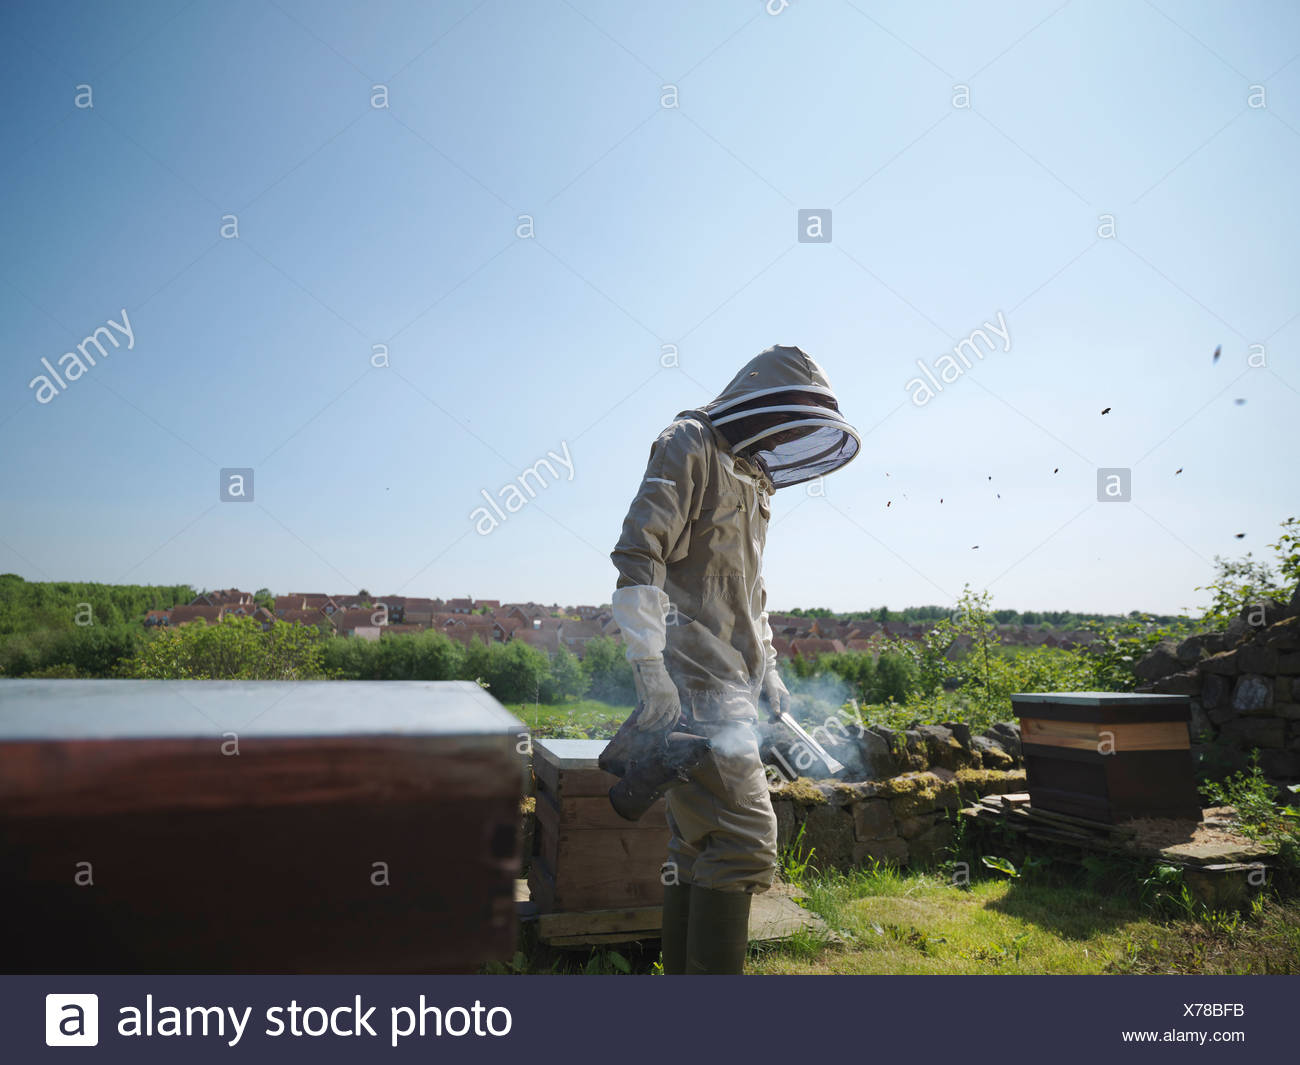 Beekeeper with smoker and hives - Stock Image